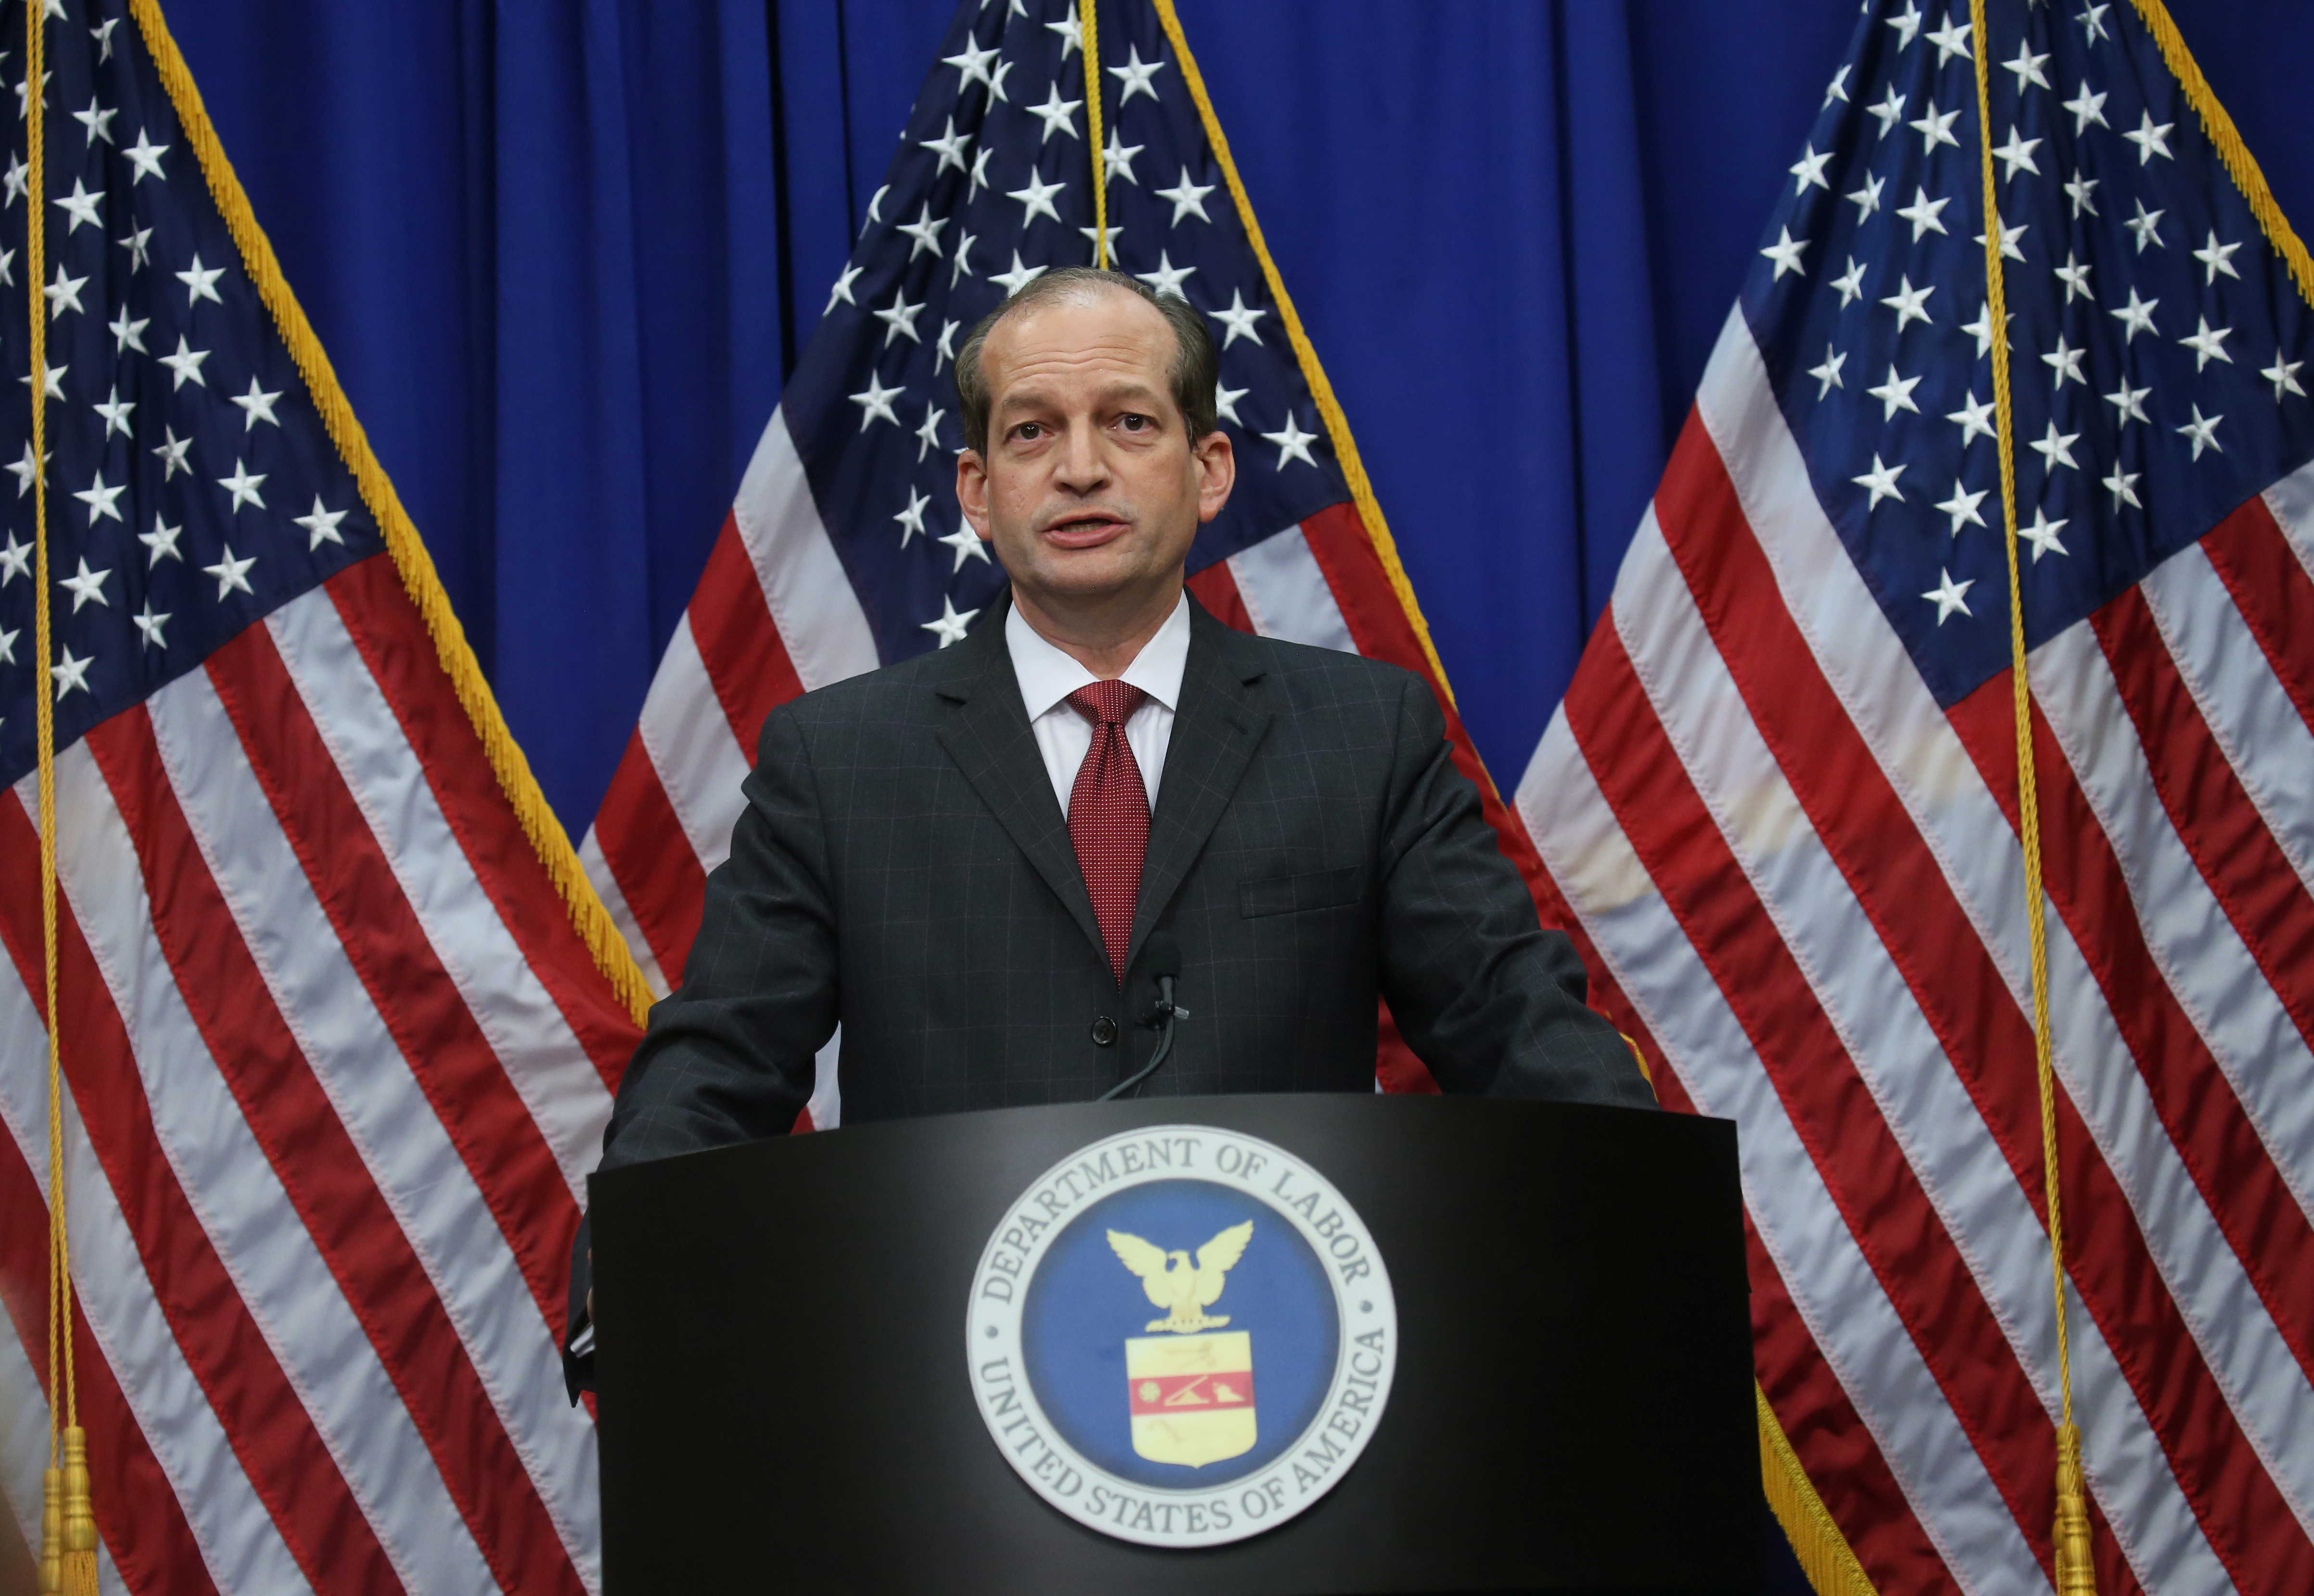 U.S. Labor Secretary Alexander Acosta makes a statement on his involvement in a non-prosecution agreement with financier Jeffrey Epstein, who has now been charged with sex trafficking in underage girls, during a news conference at the Labor Department in Washington, U.S., July 10, 2019. REUTERS/Leah Millis